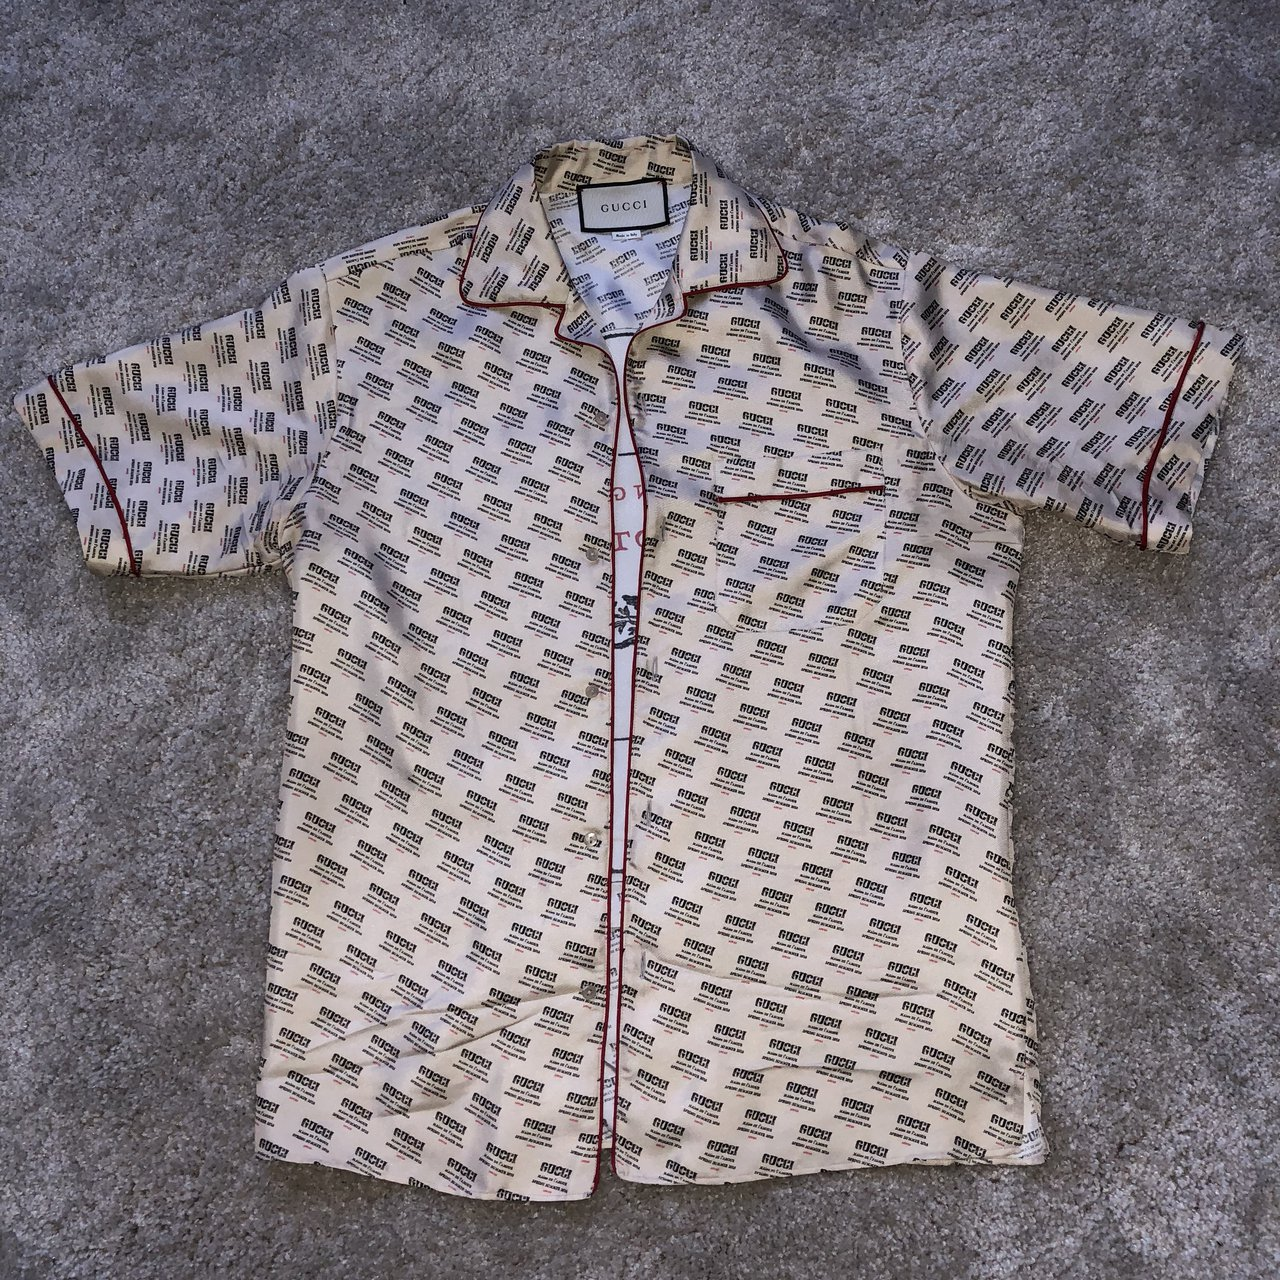 0c90249be9b GUCCI stamp print bowling shirt. Worn once only to take a be - Depop